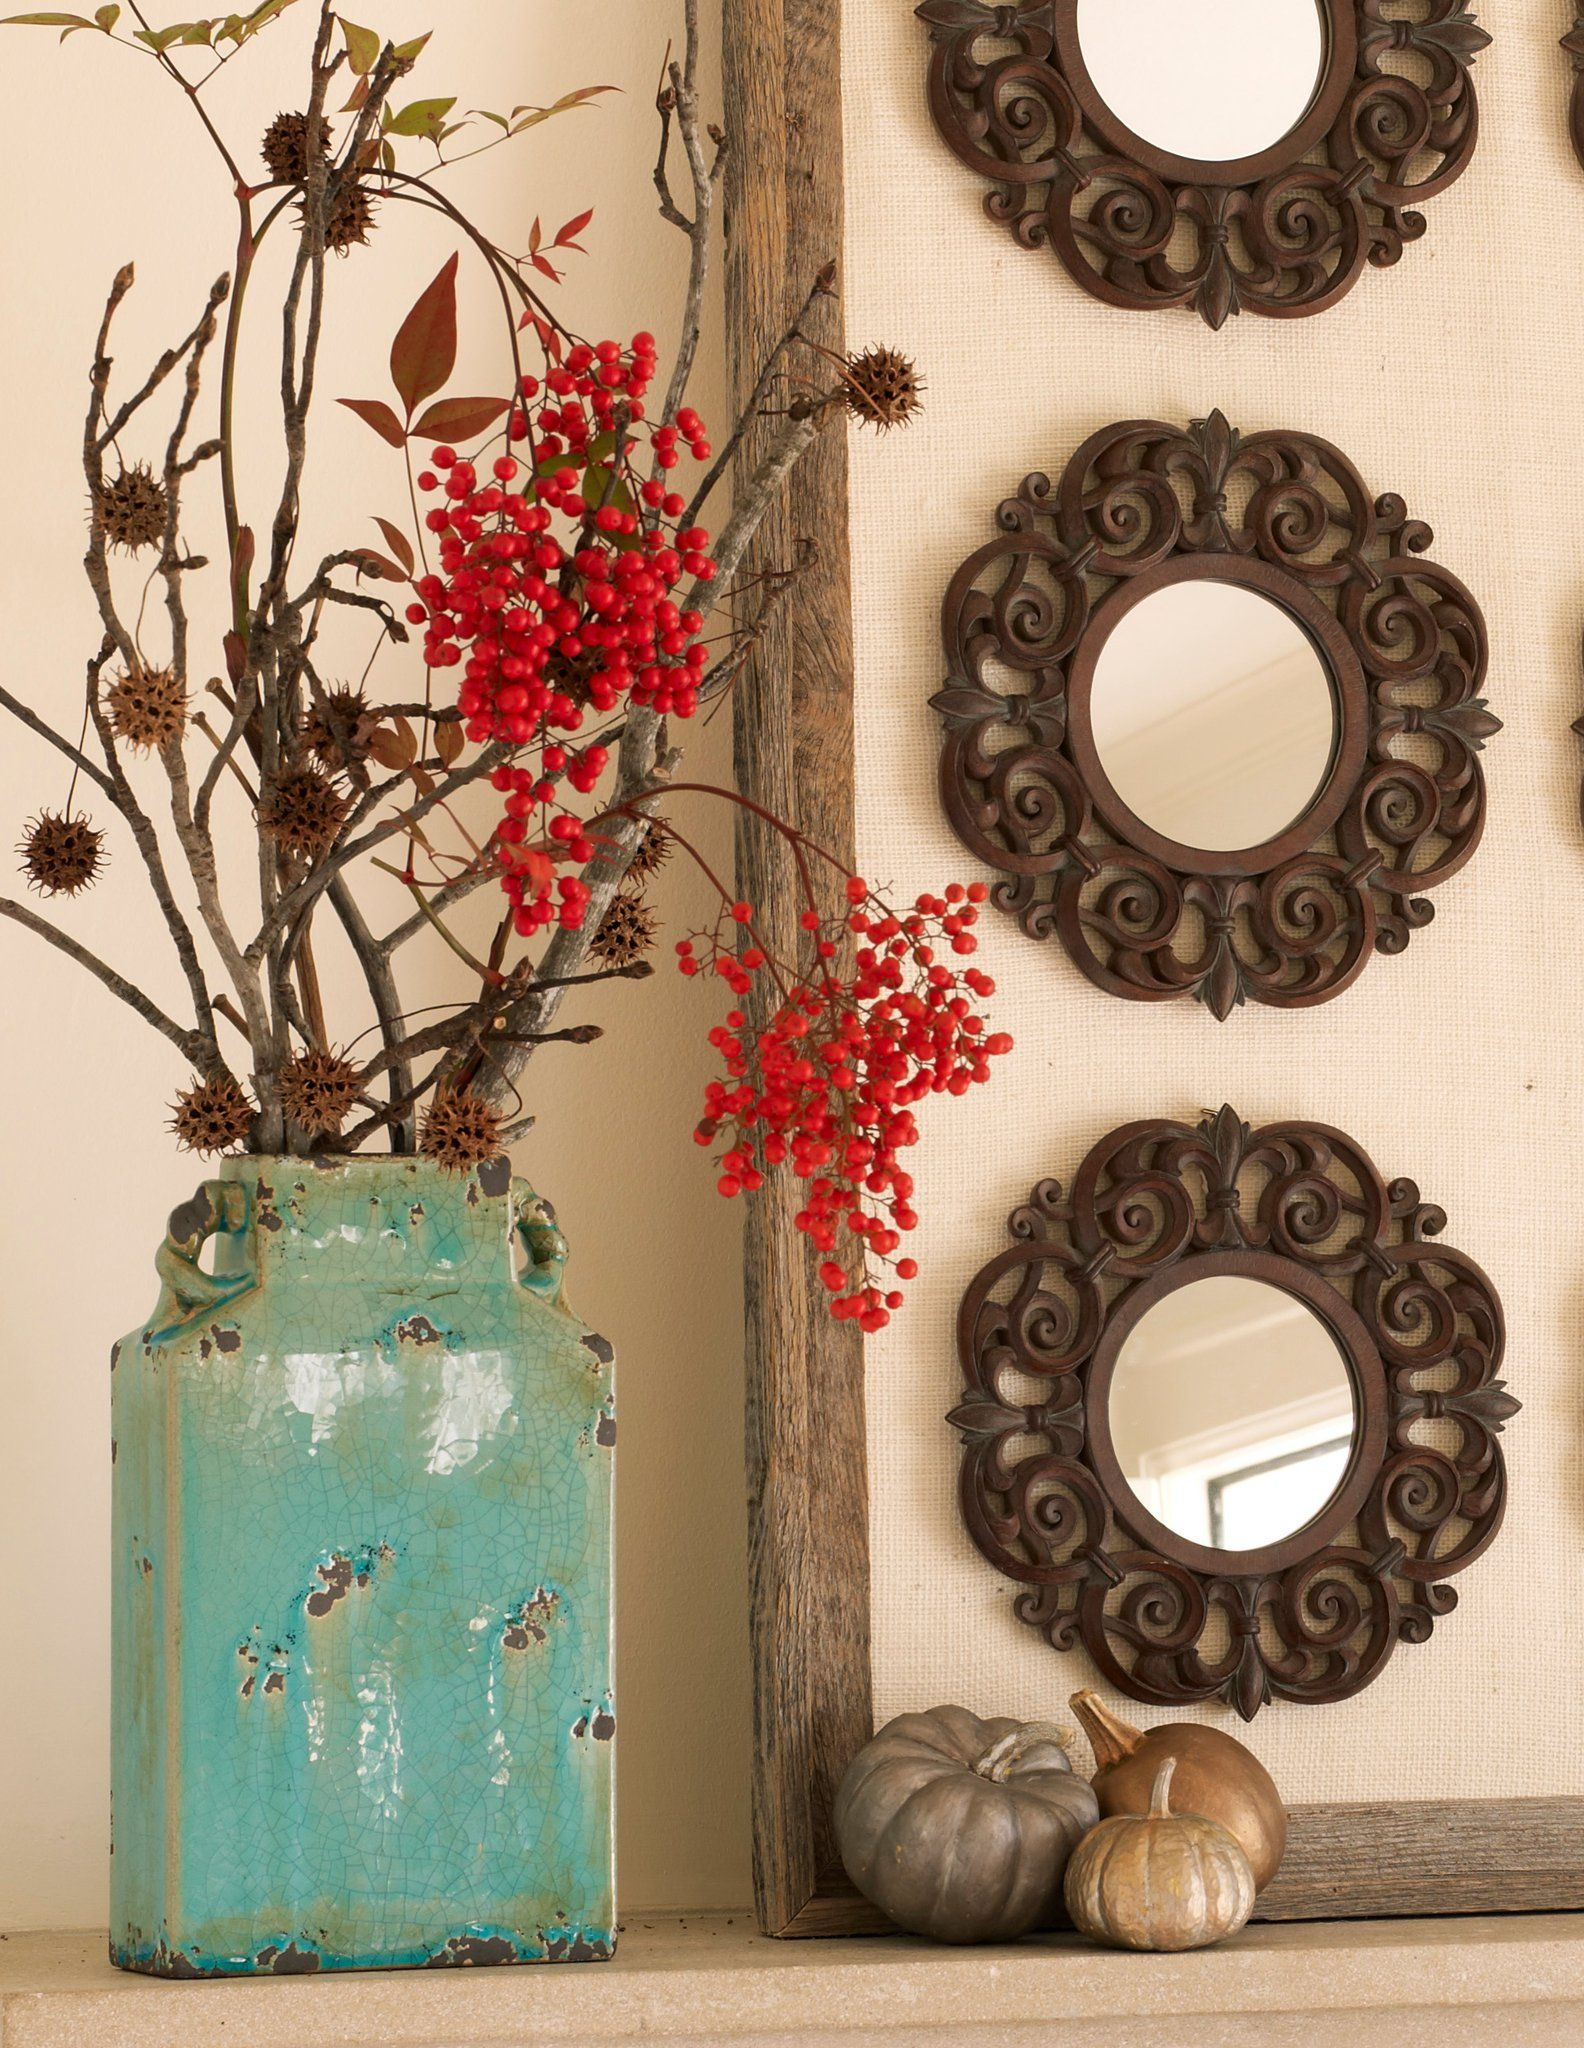 Athena Le Vase To Bring The Turquoise From Kitchen Into Dining Room Cannot Clay Vasered Decorbrown